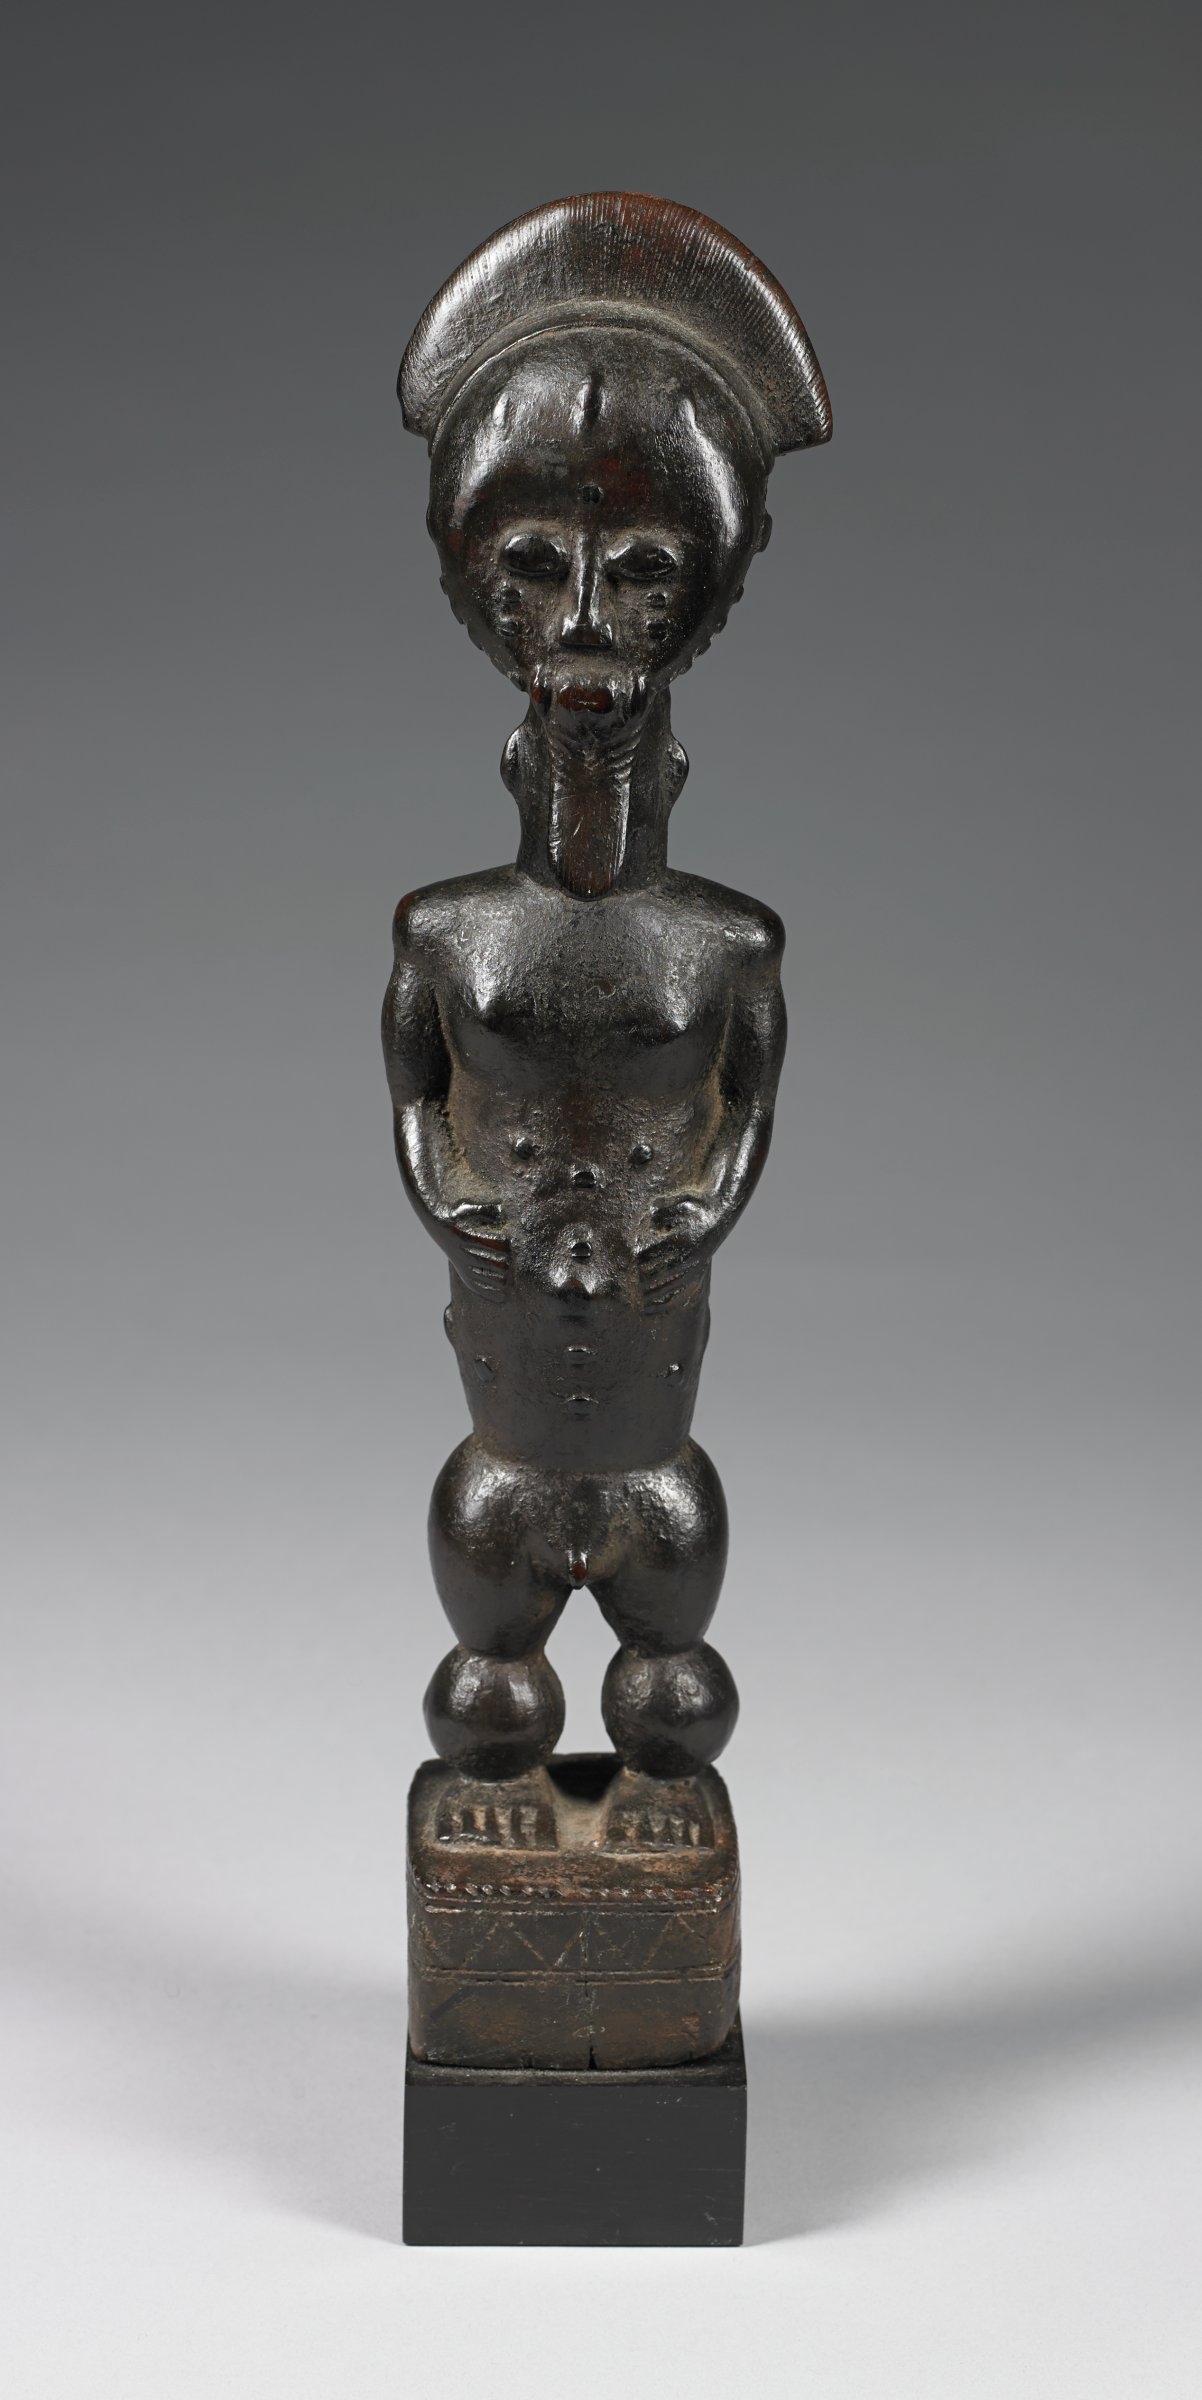 Male figure with pointed beard, crested coiffure, body scarification, short legs with exagerated musculature, with overall worn patina.